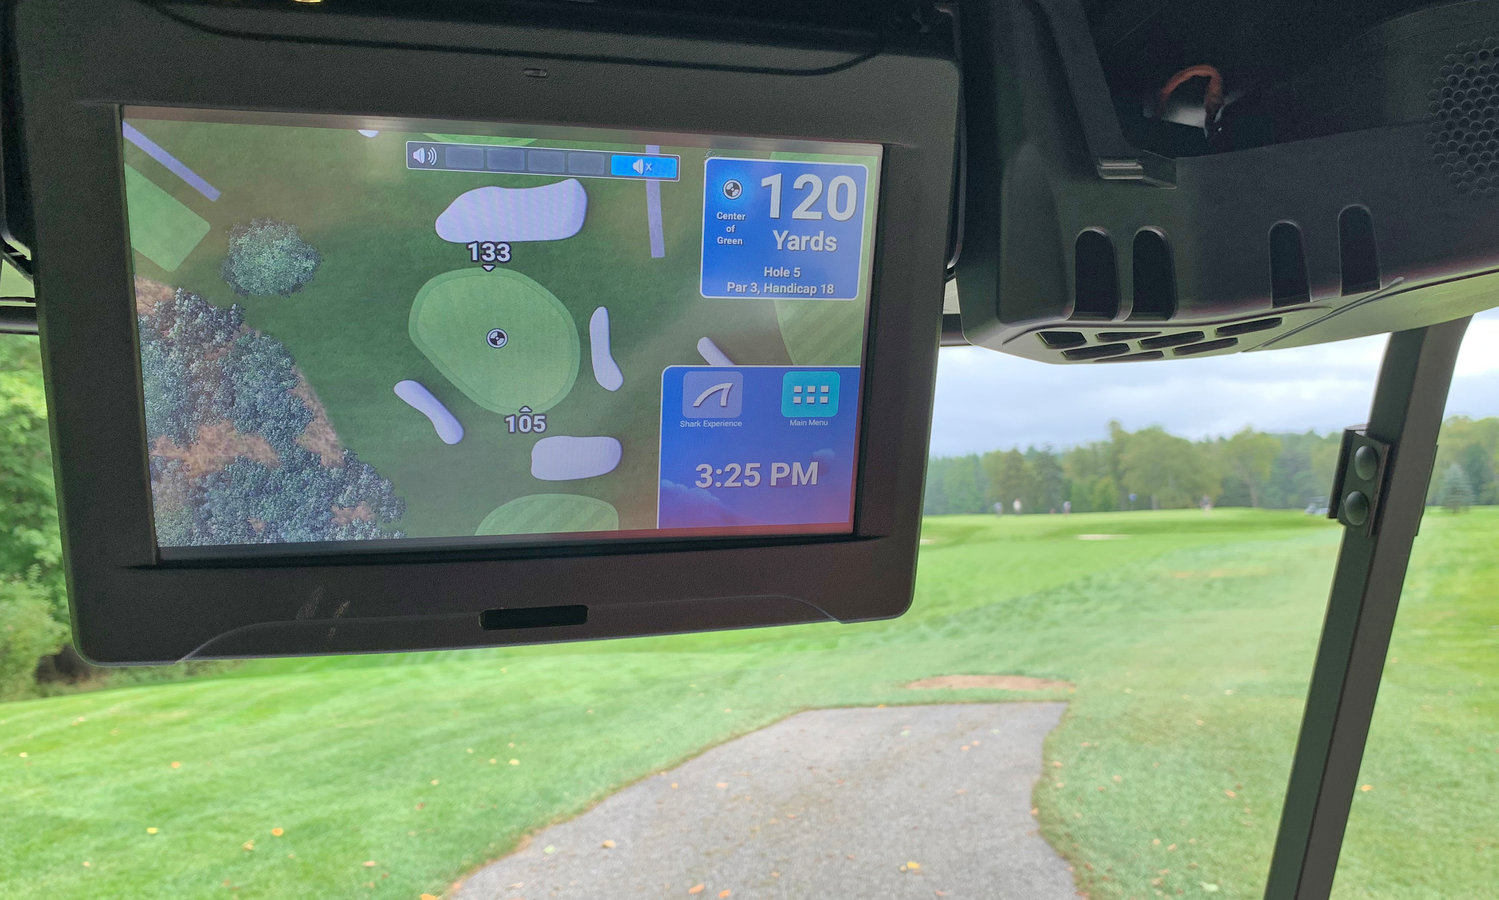 YARDAGE GPS — The golf carts at Thendara Golf Club are equipped with a GPS system that allows you to track your yardage to the center of the green from wherever you are on the course.